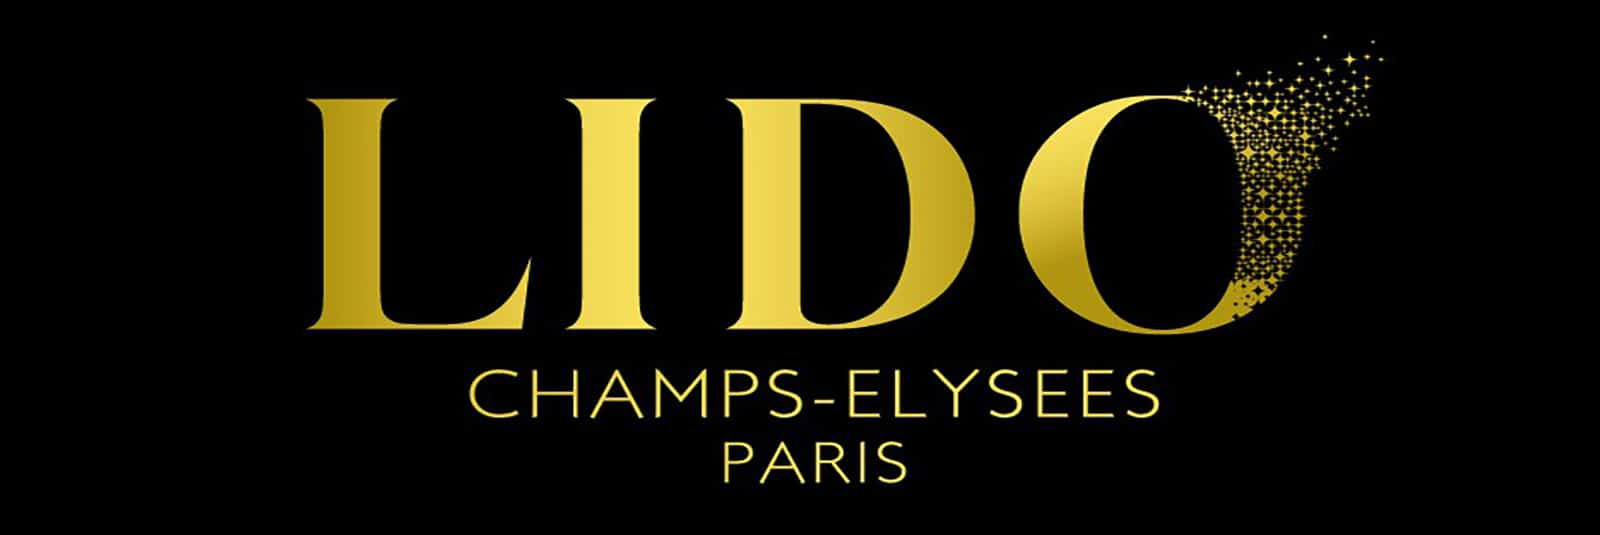 The lido paris